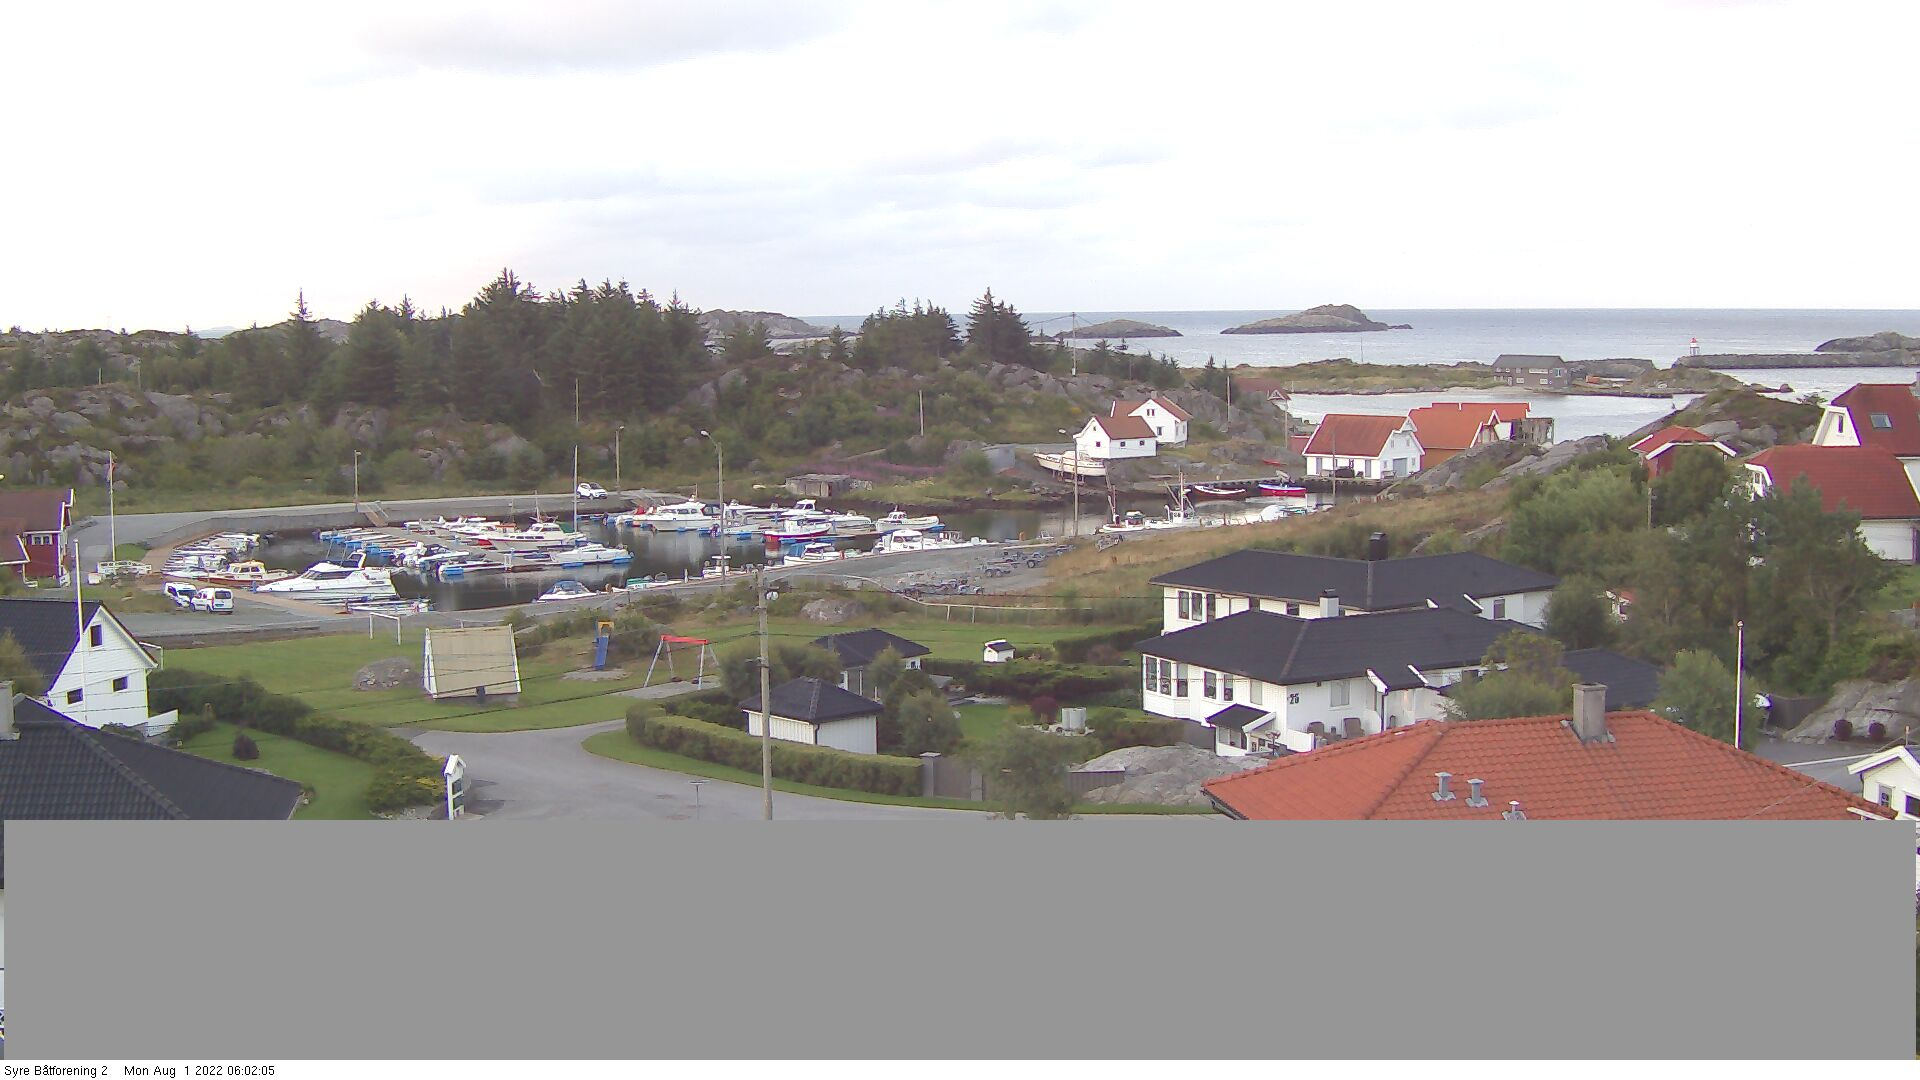 Webcam Syre, Karmøy, Rogaland, Norwegen